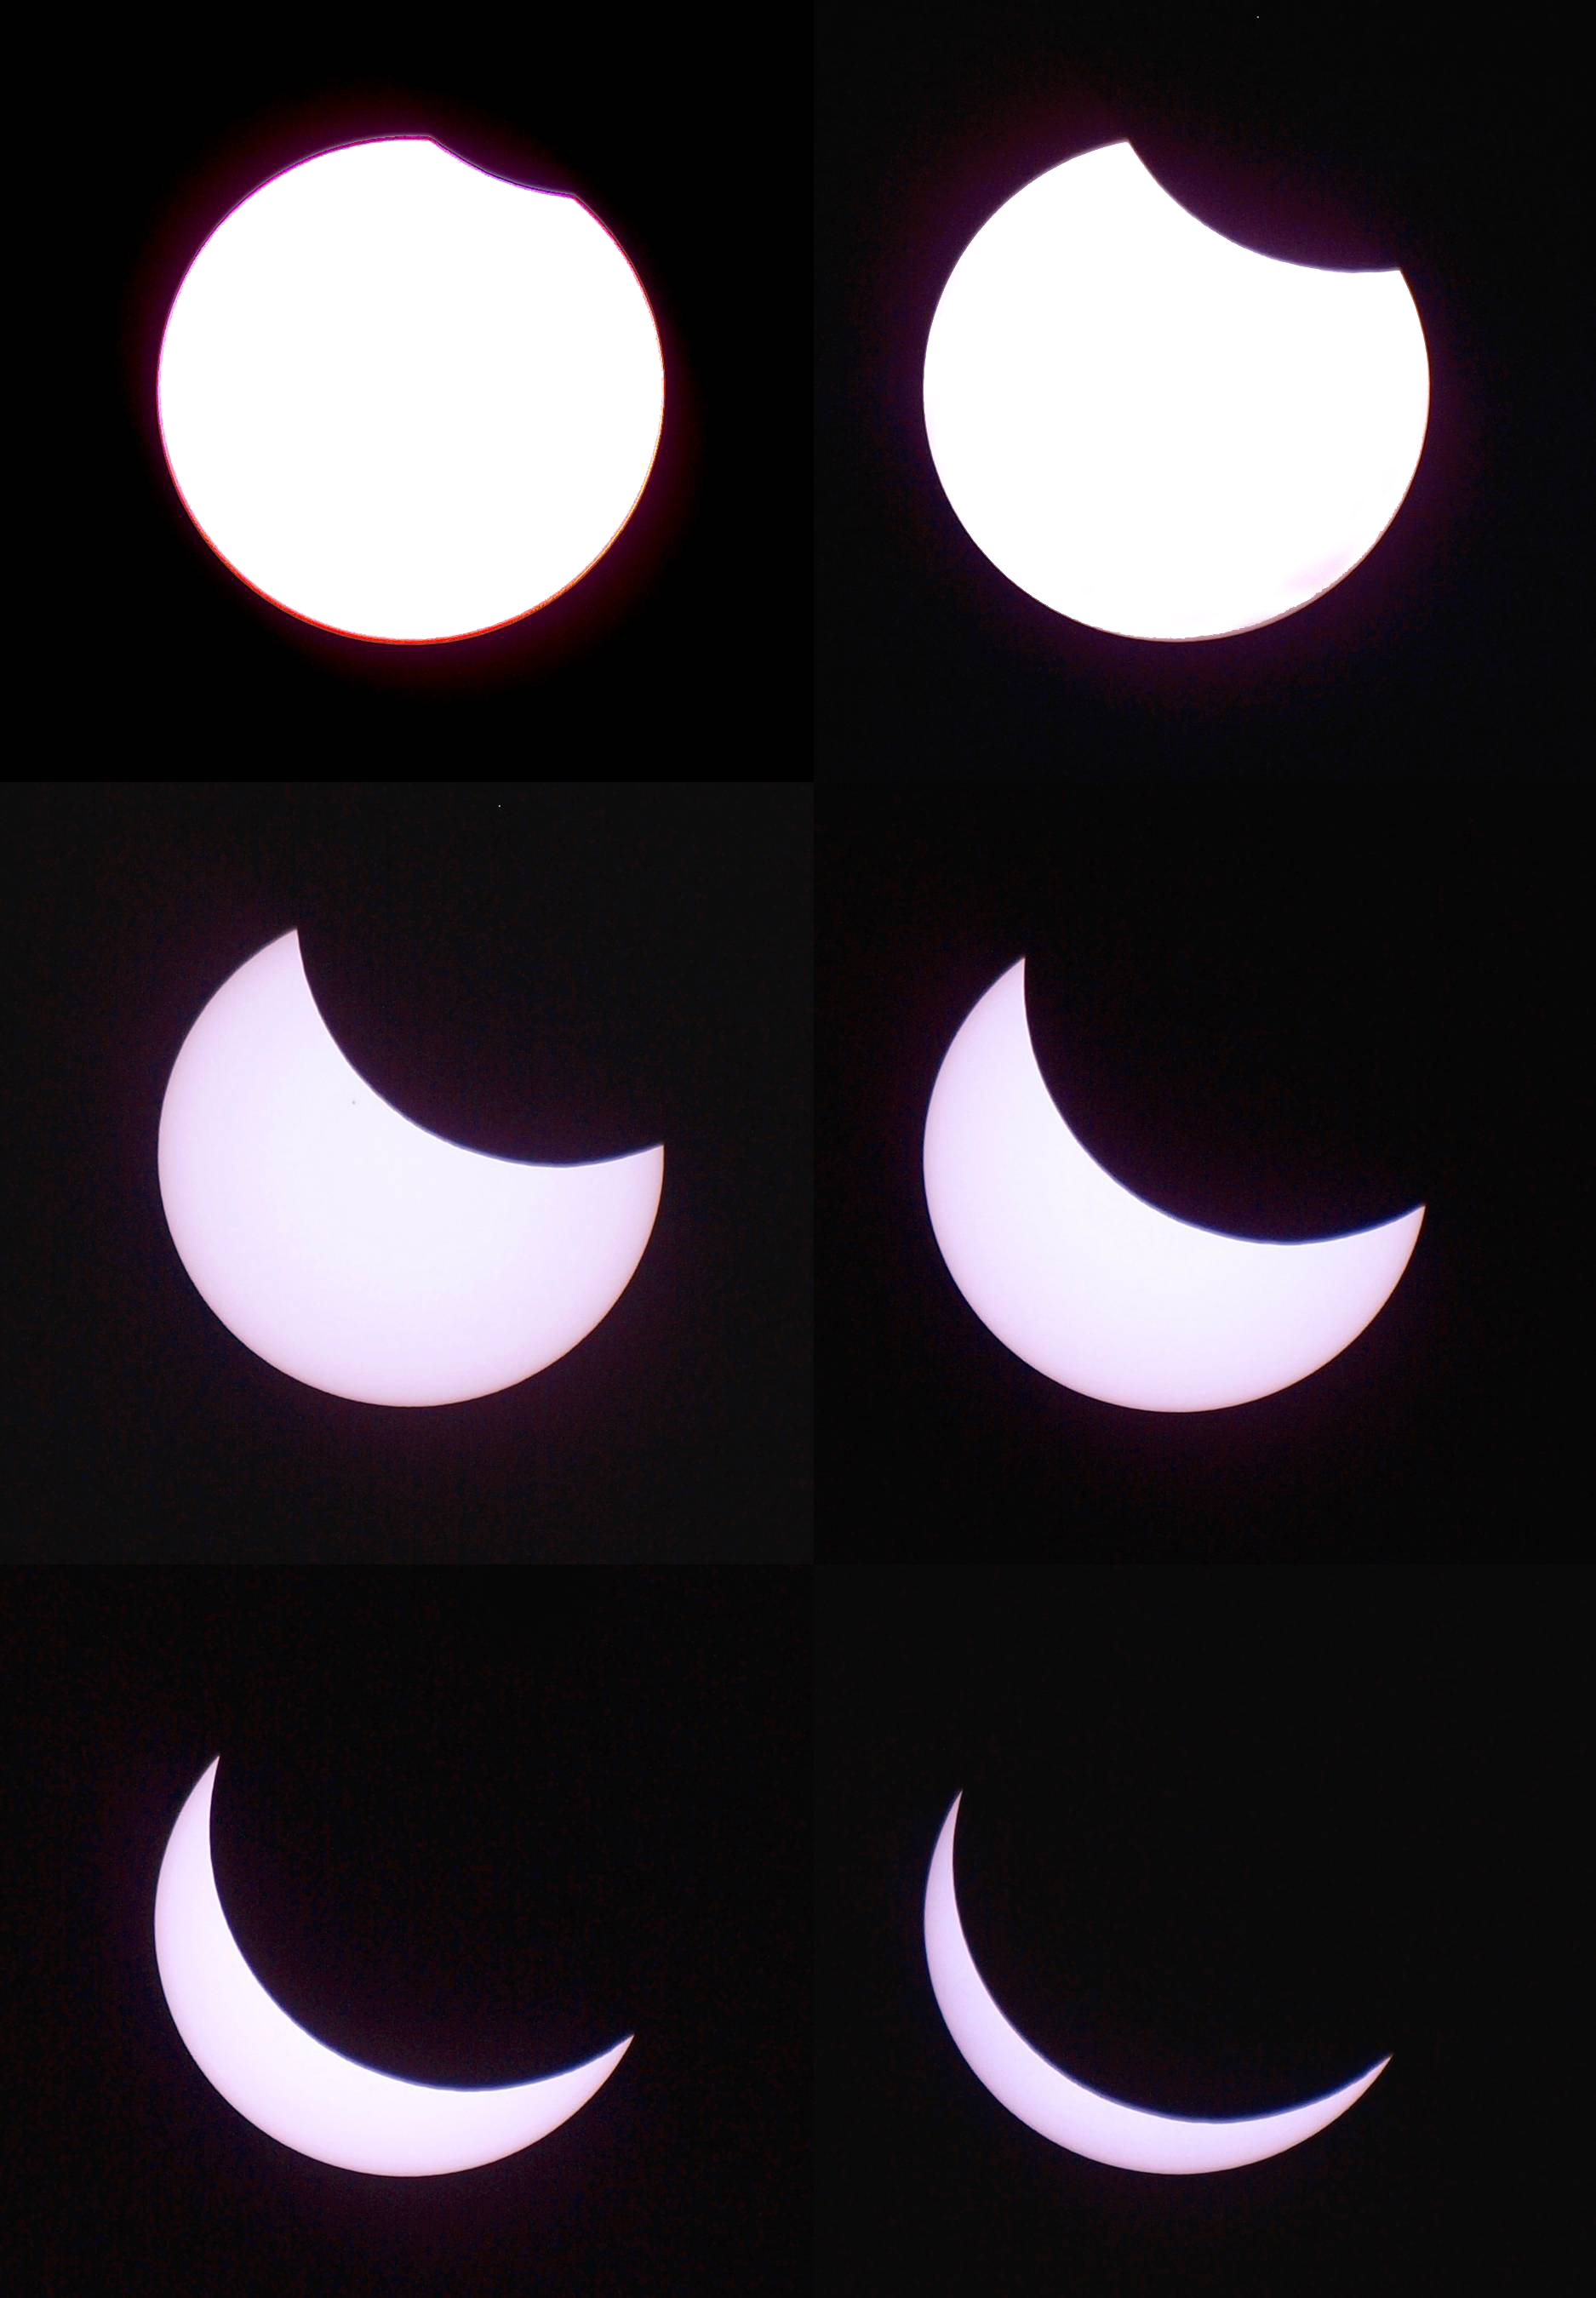 Partial Phases - Solar Eclipse